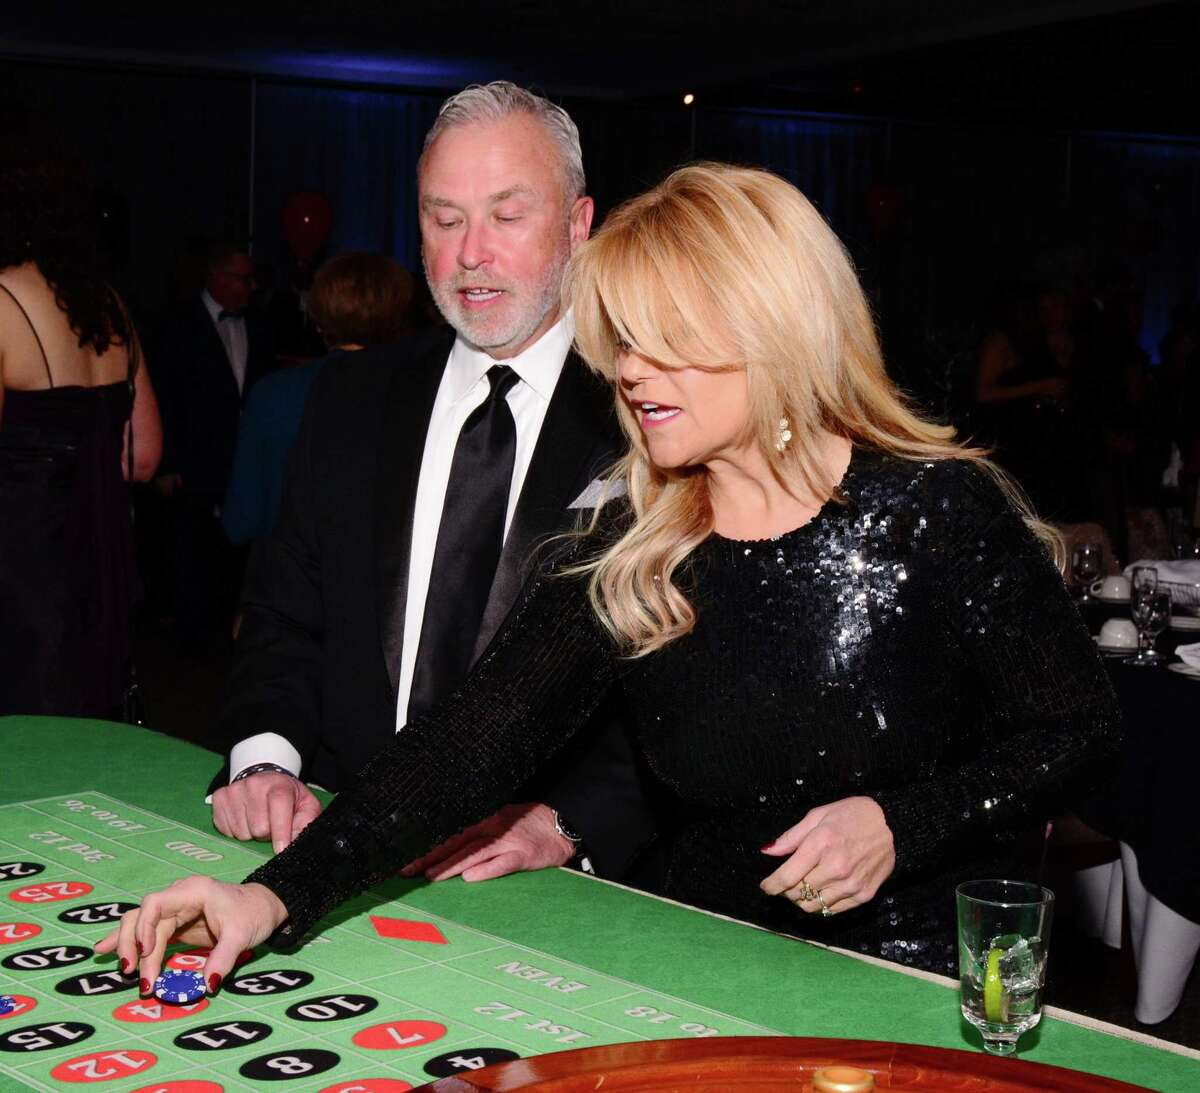 Ken Taylor and Judy Huntington get in on the action at the roulette table at the Greater New Milford Chamber of Commerce's 21st annual Crystal Winter Gala.